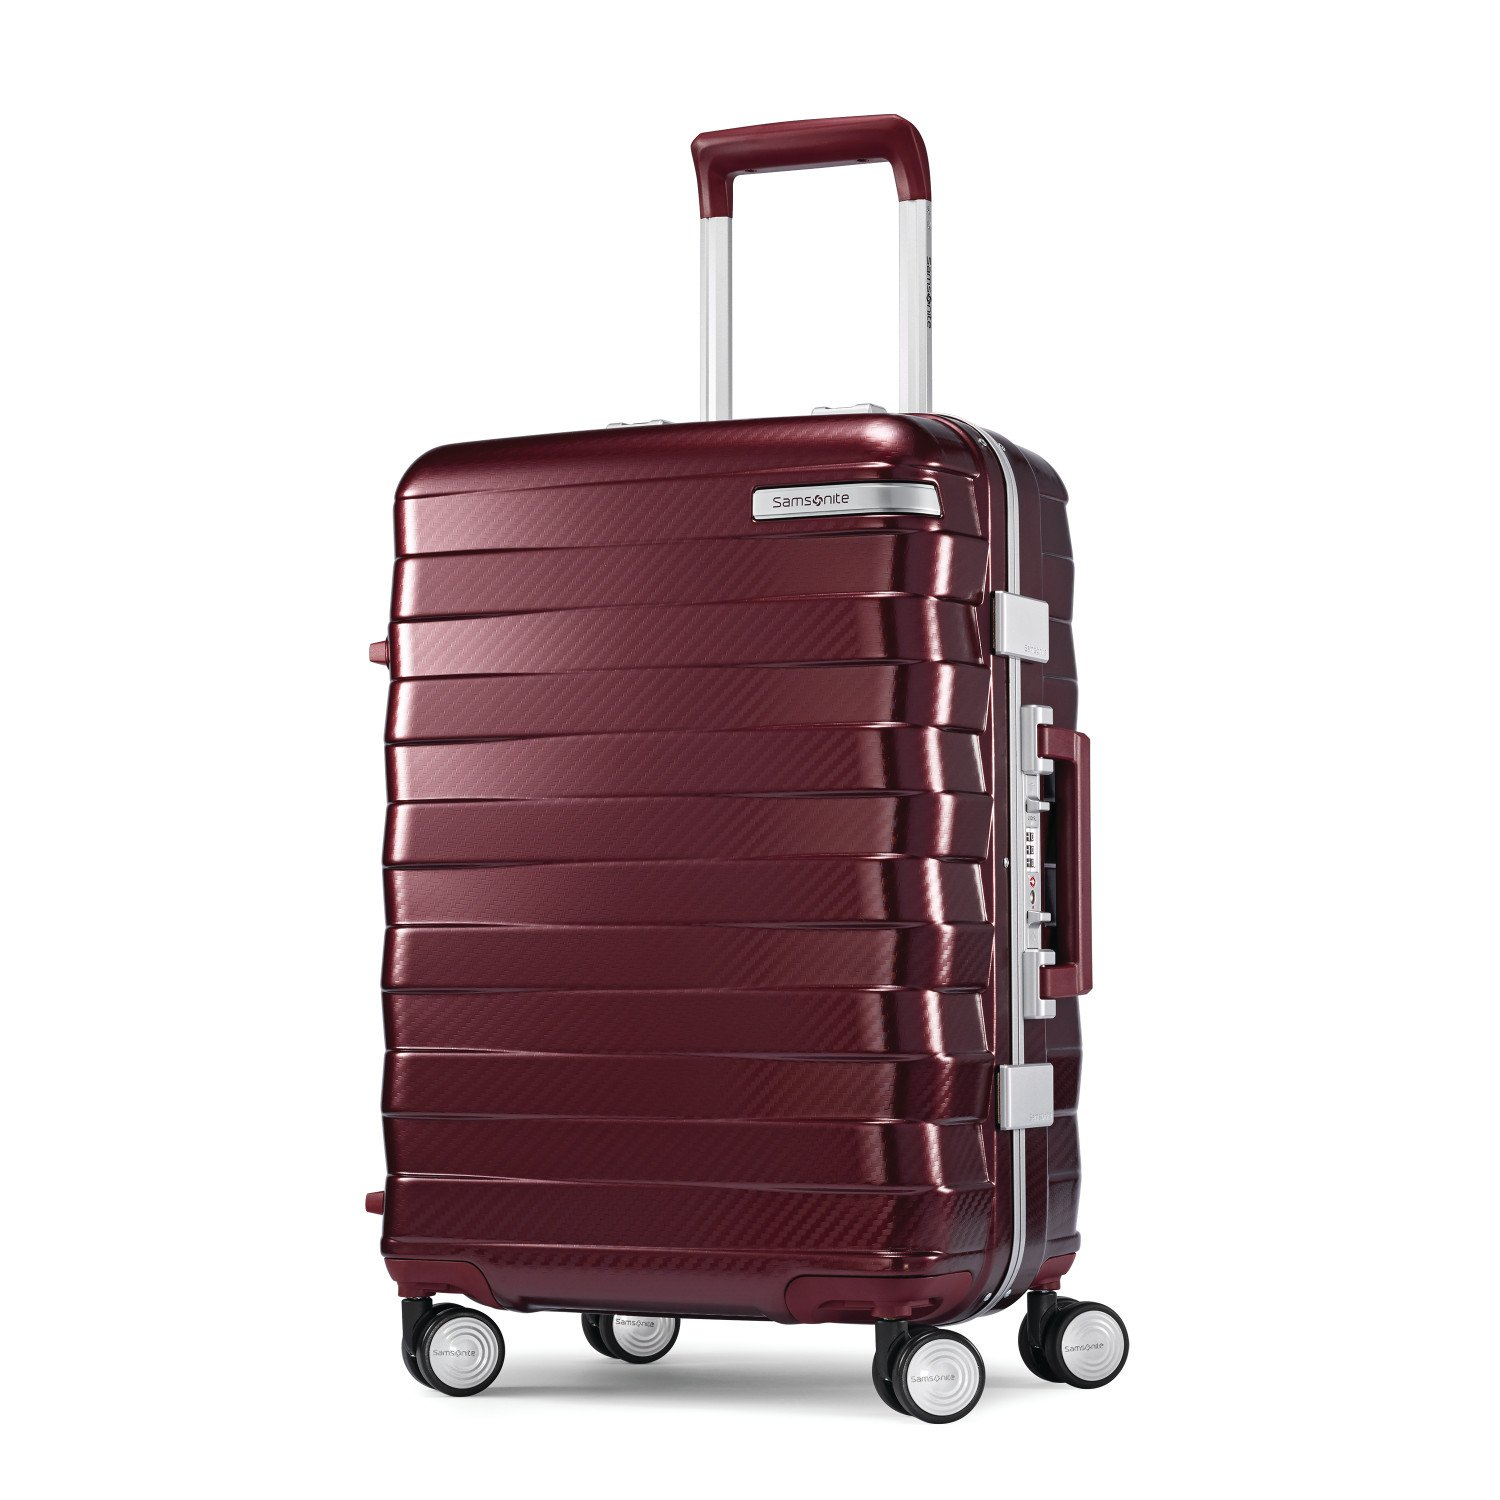 Samsonite Framelock Hardside Carry On Luggage with Spinner Wheels, 20 Inch, Cordovan Samsonite Corporation 111170-2156